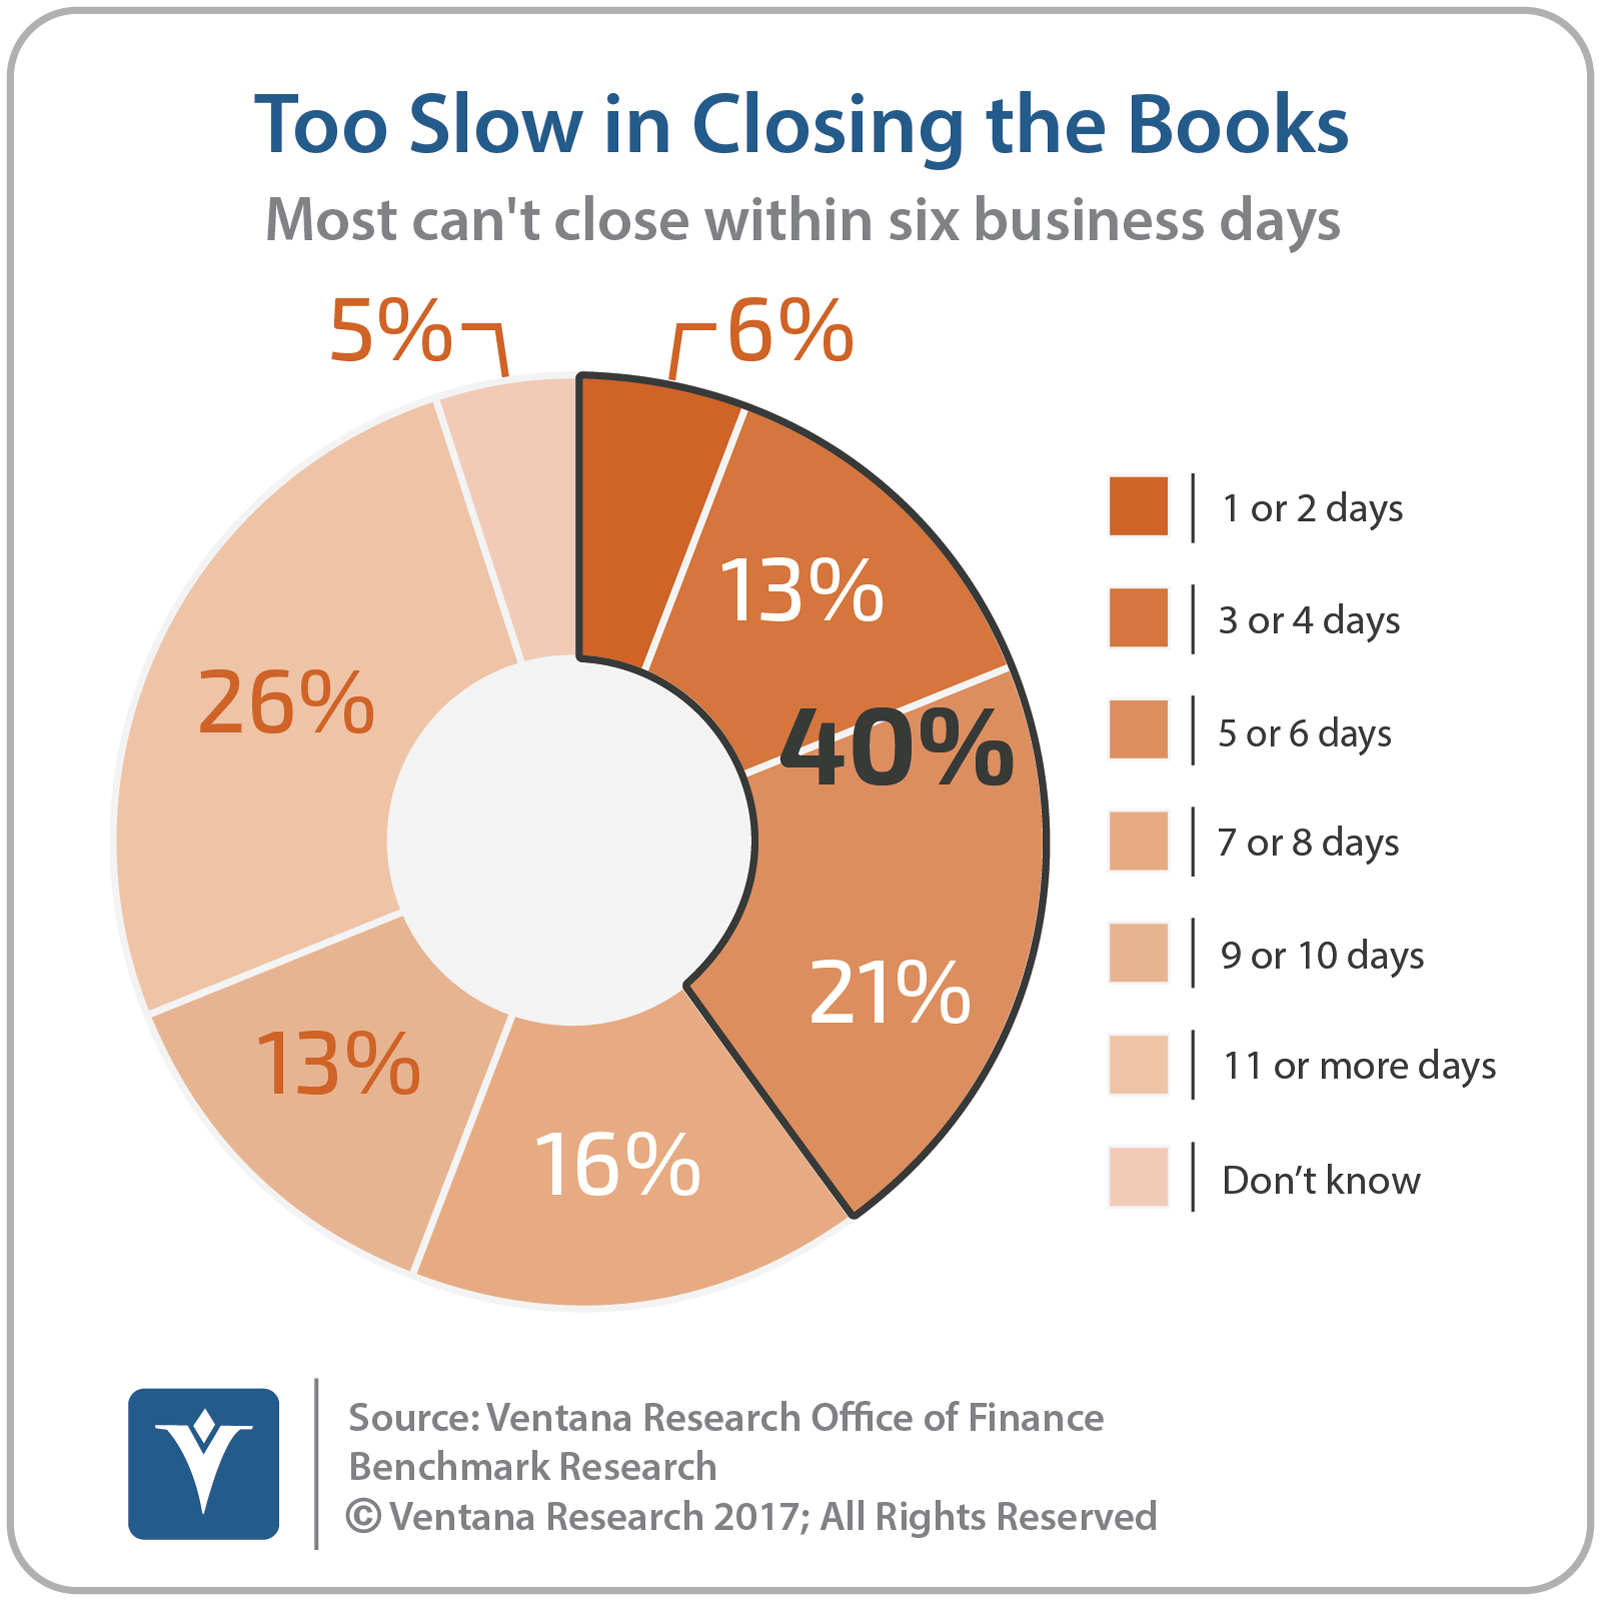 vr_Office_of_Finance_08_it_takes_too_long_to_close_the_books_updated(1).png